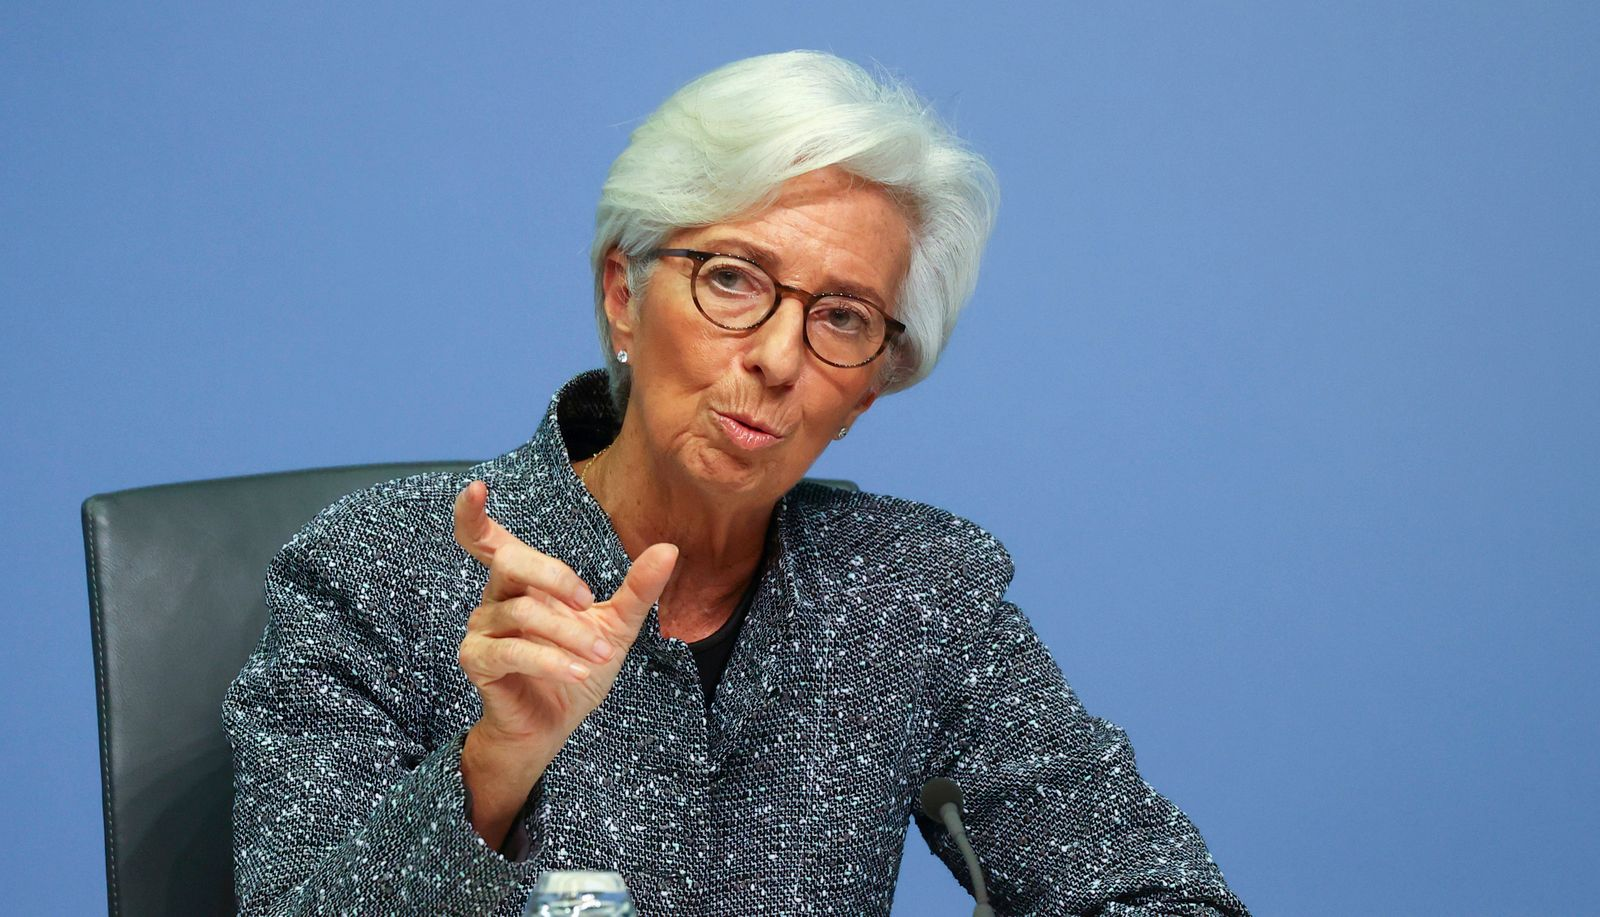 FILE PHOTO: European Central Bank (ECB) President Christine Lagarde gestures during a news conference on the outcome of the meeting of the Governing Council, in Frankfurt